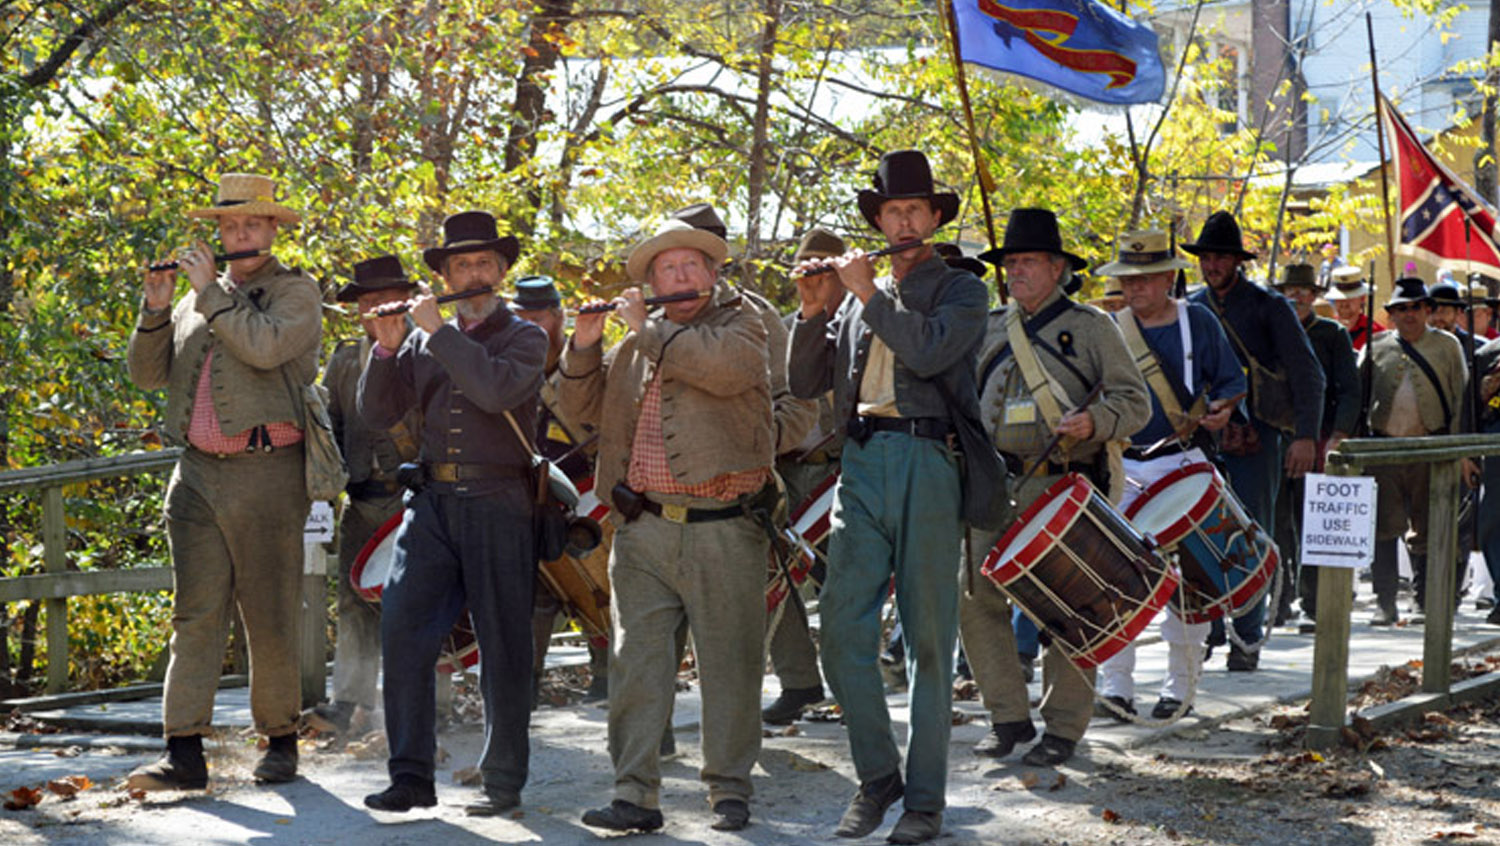 135th National Skirmish of the North – South Skirmish Association